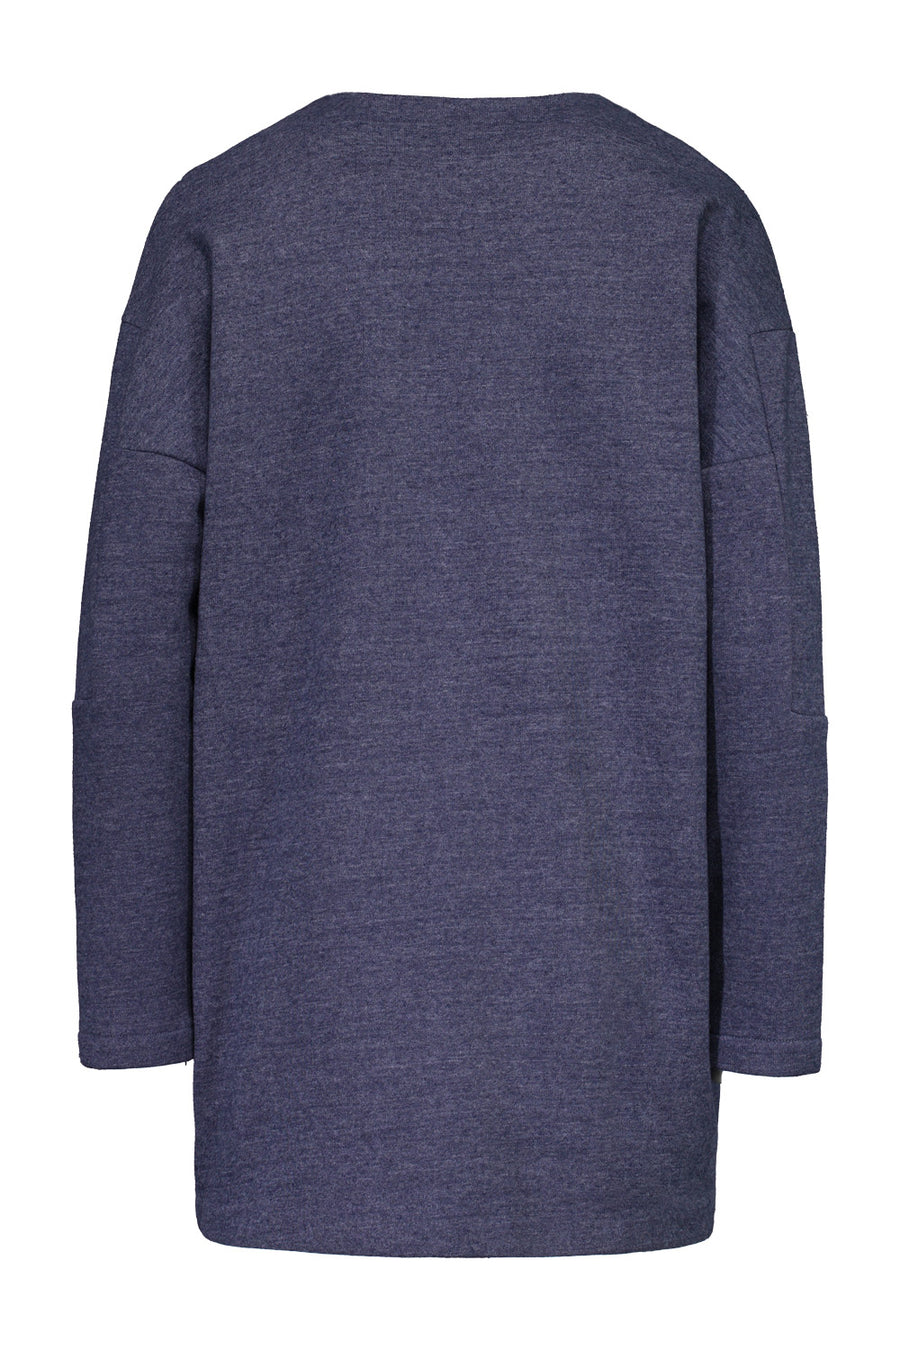 Amari Top Recycled Fleece